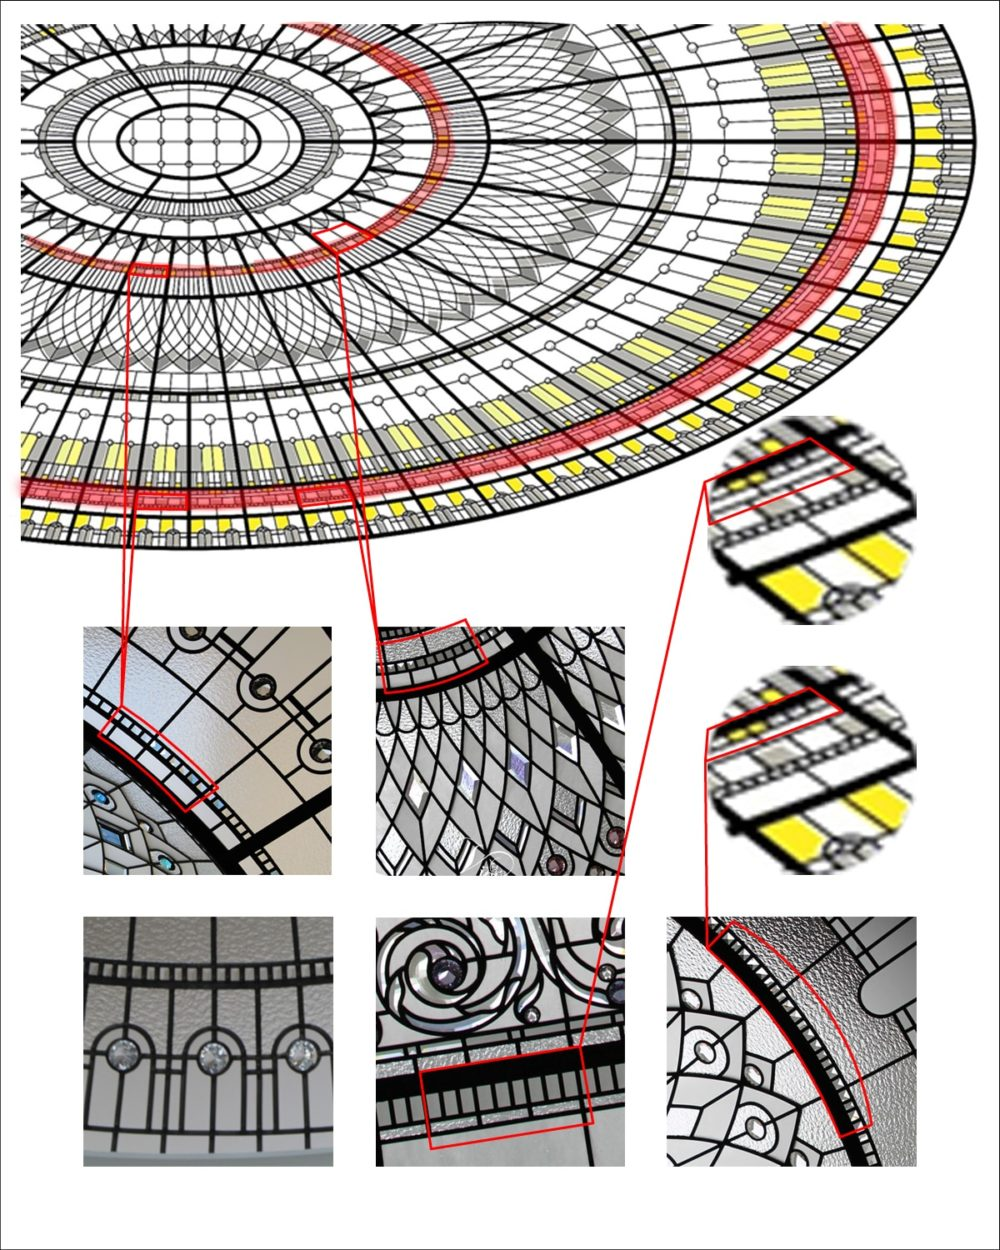 stained-glass-dome-design-comparison-copyright-infrigement-copycat-original-srtwork